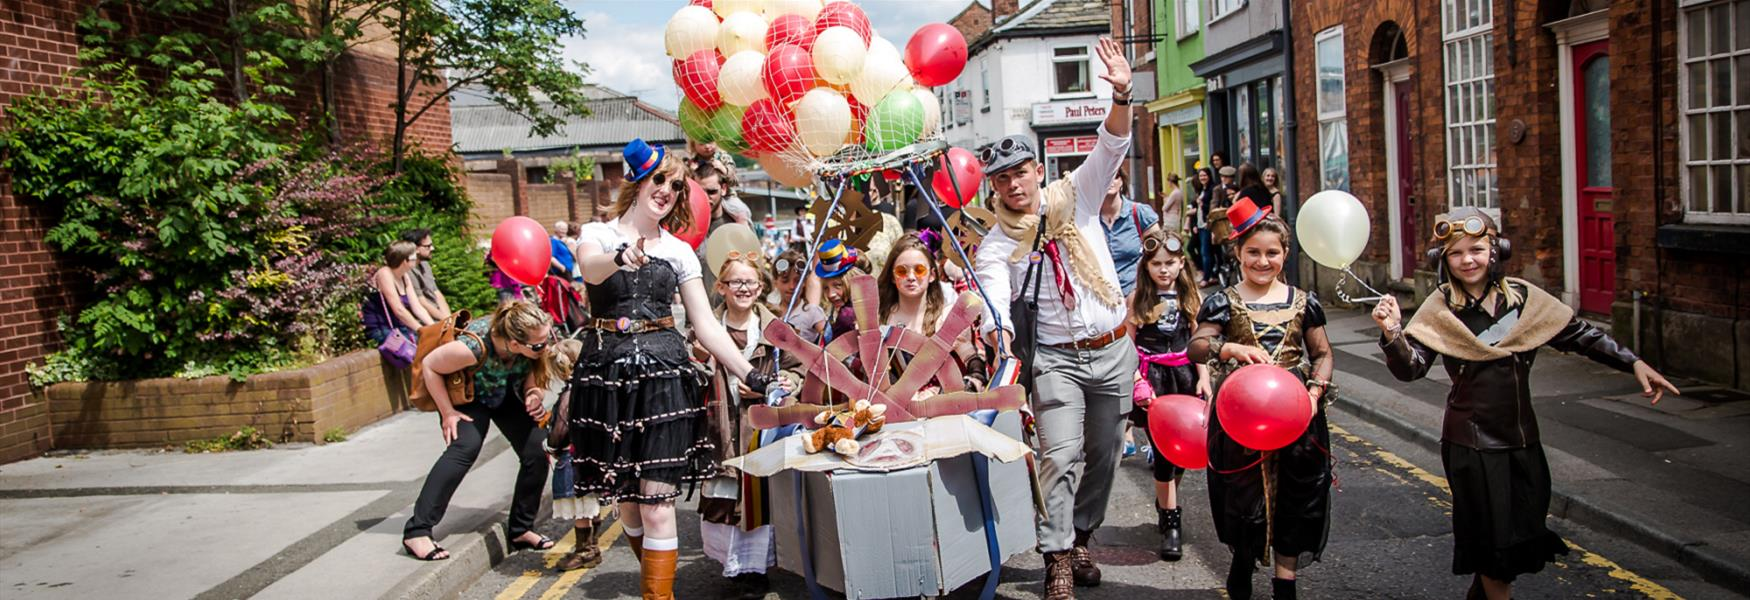 What's on in Cheshire